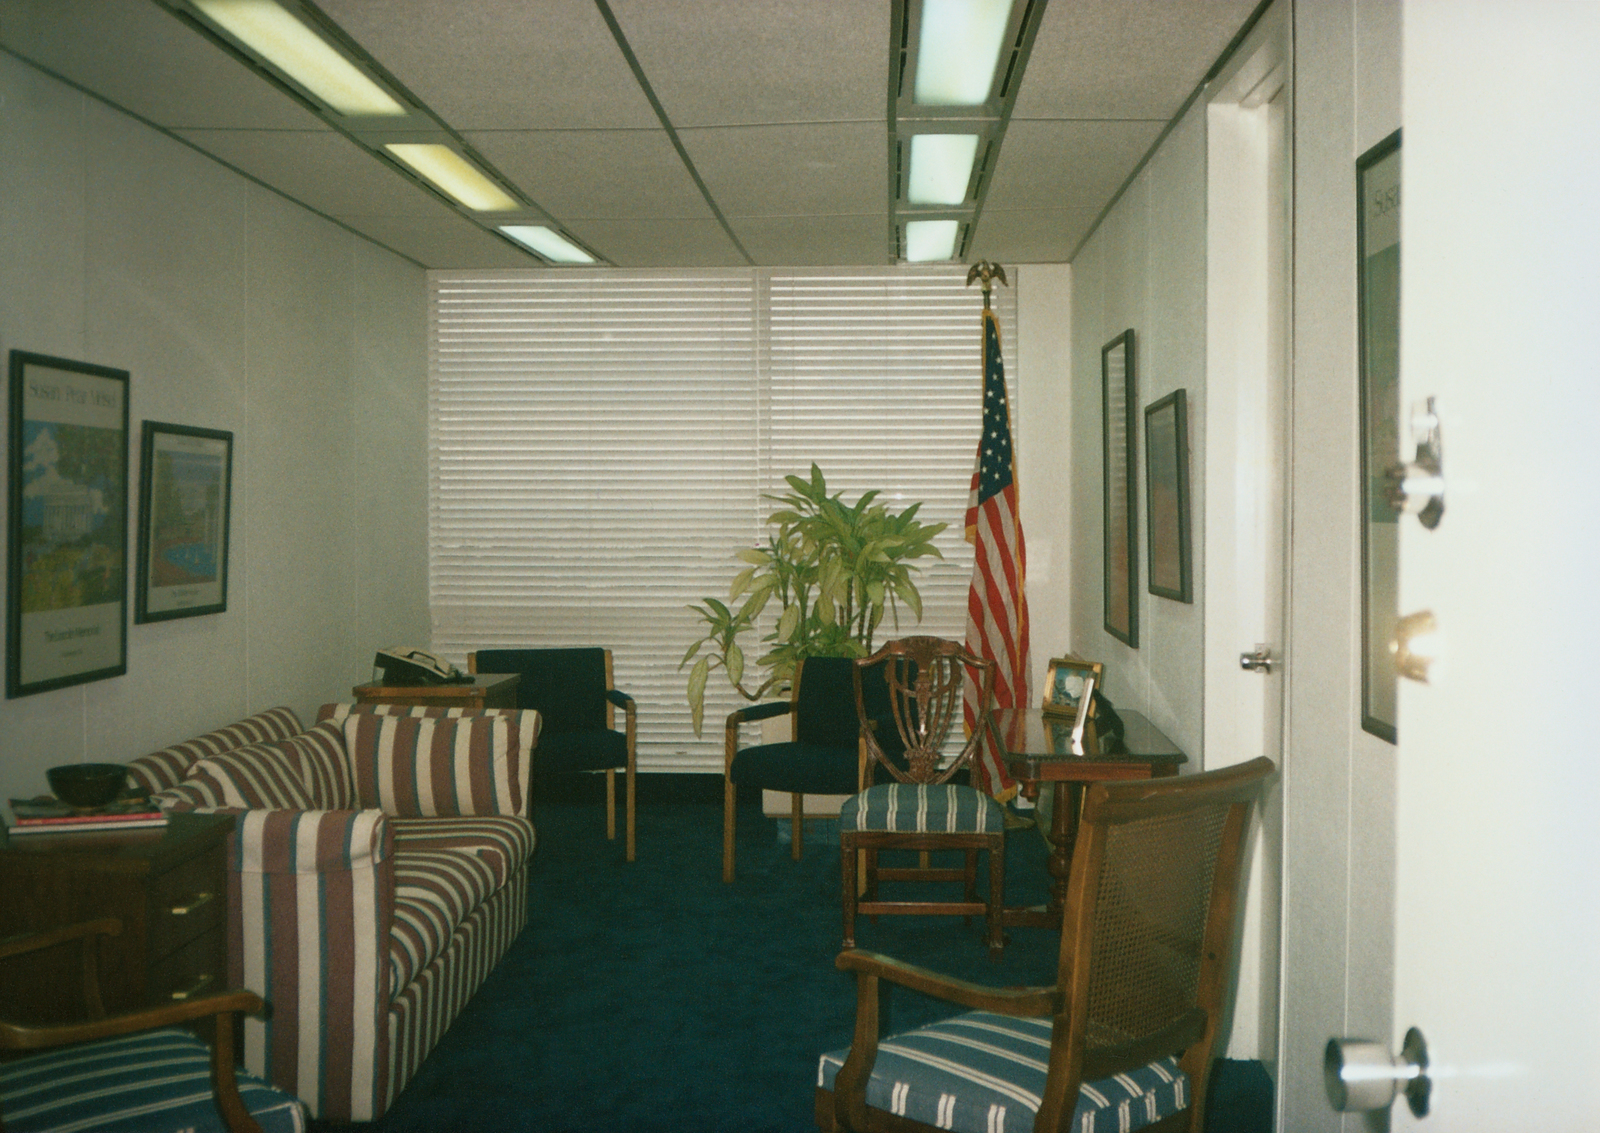 Kingston - Chancery Office Building - 1992